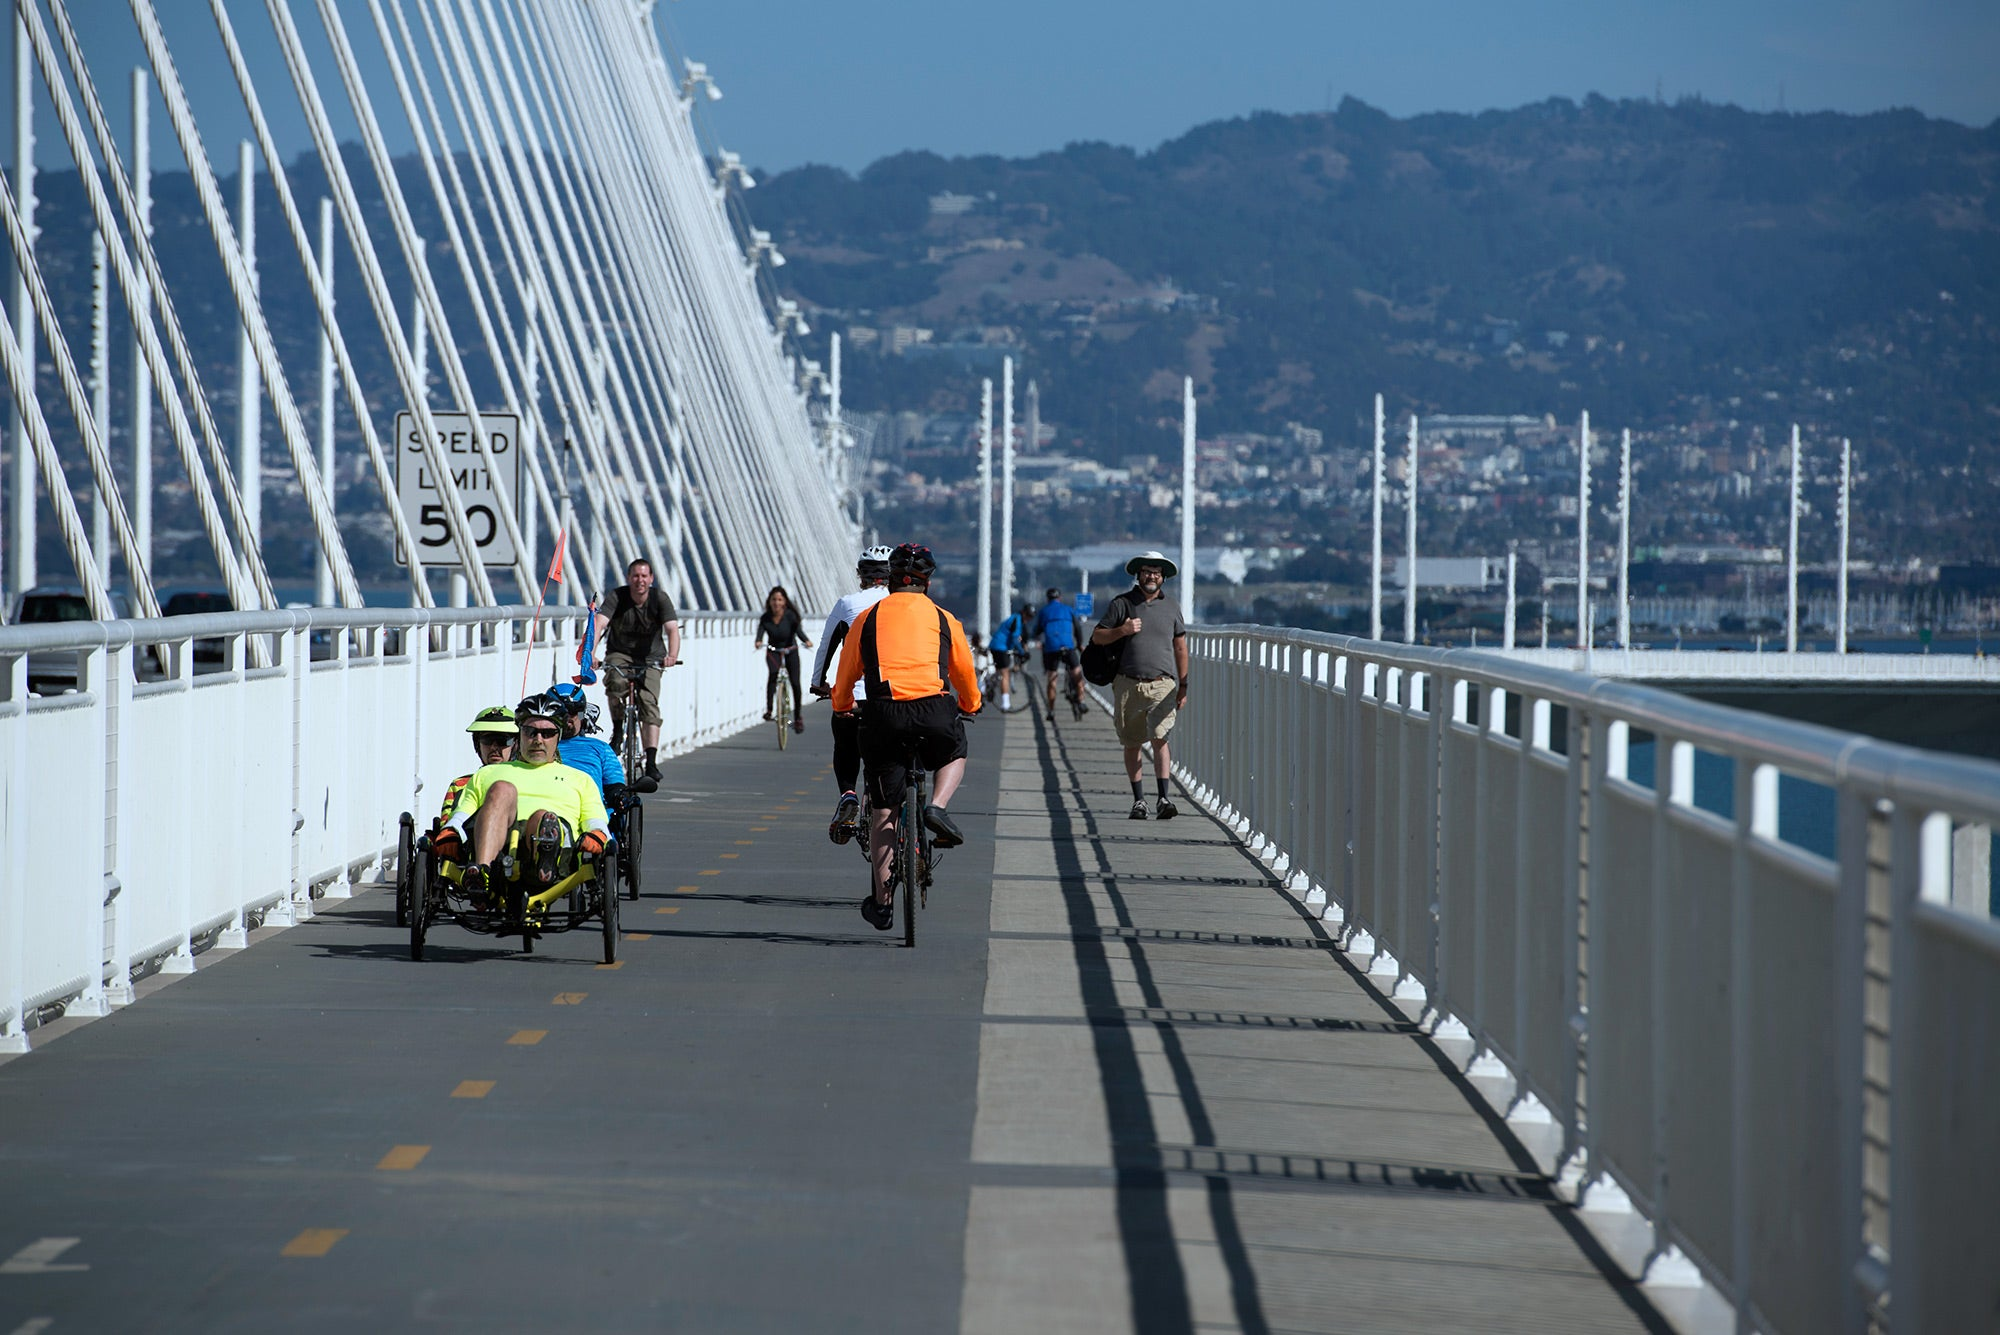 Walkers and cyclists share the path.